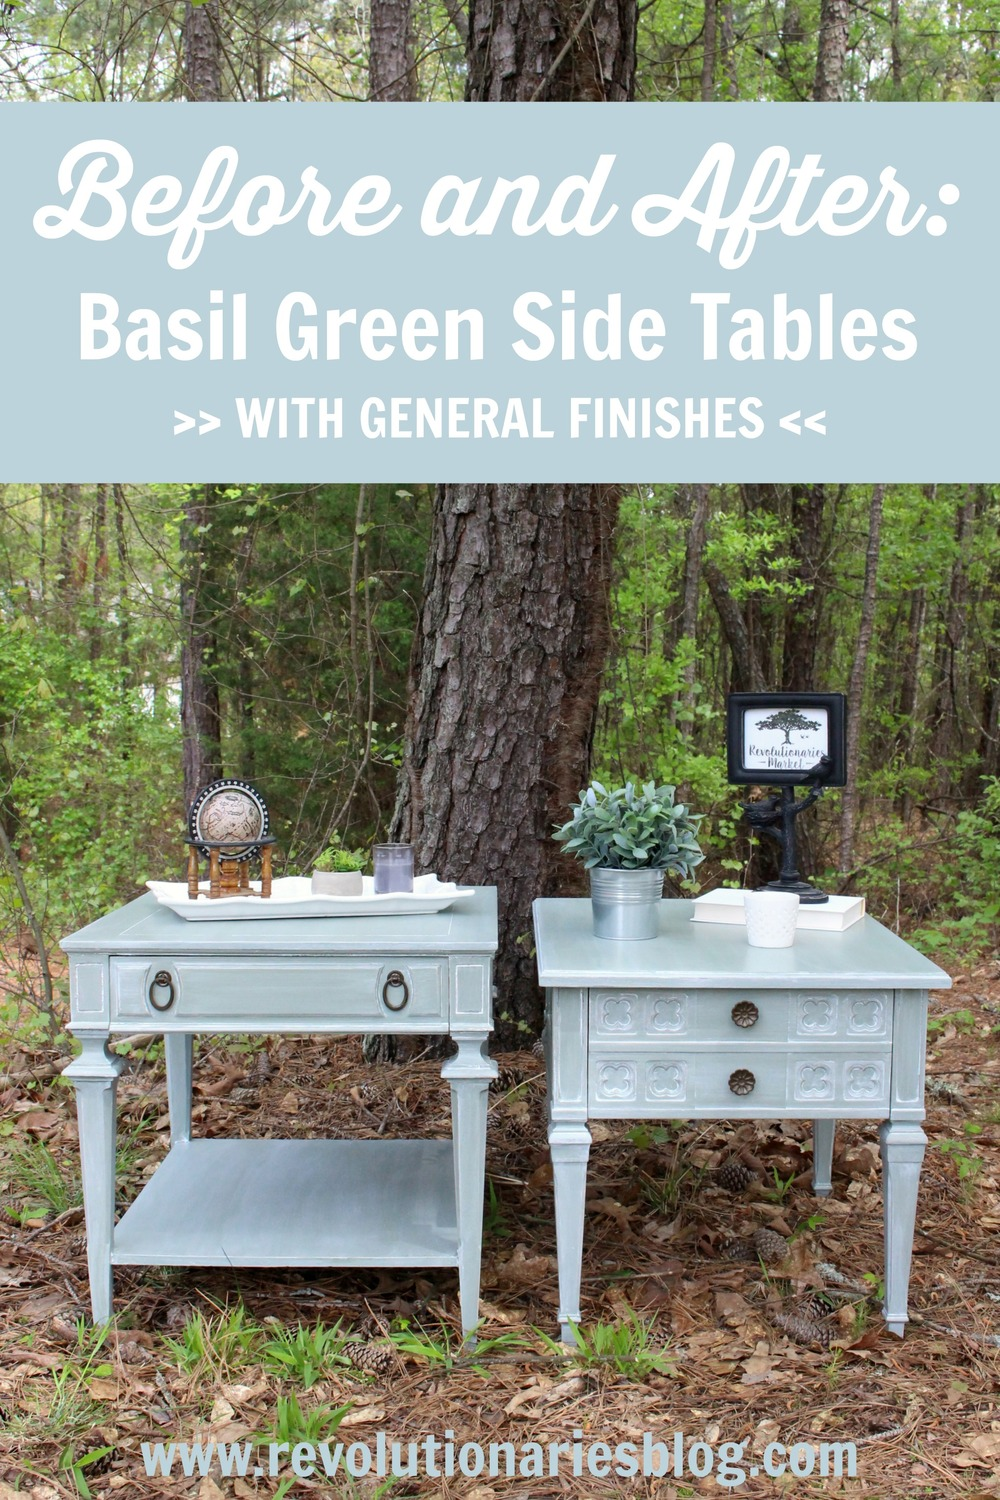 Before and After: Basil Green Side Tables